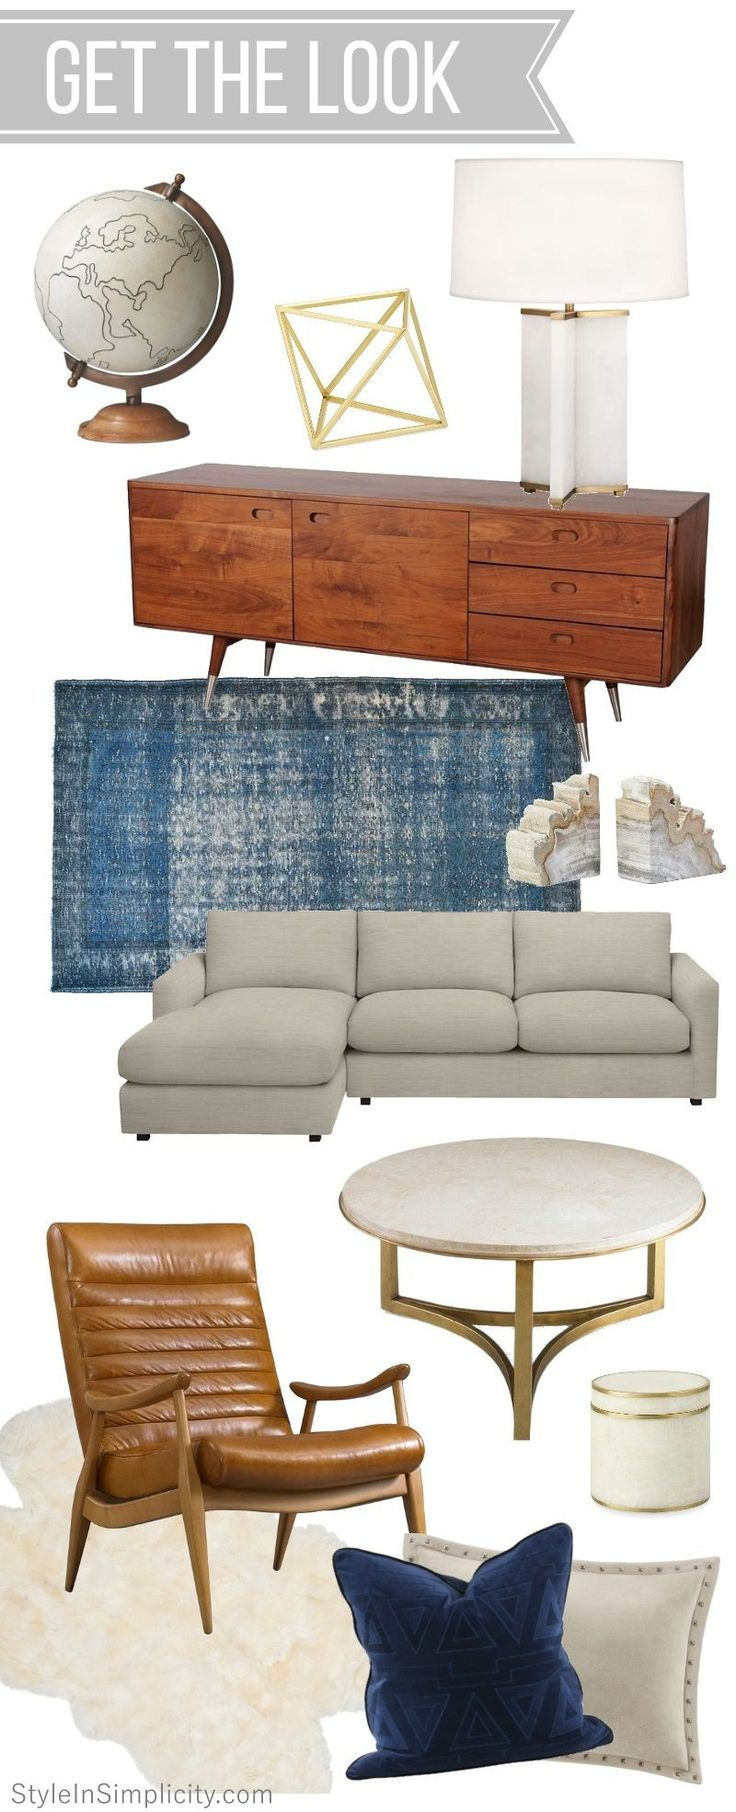 Mid Century Furniture Fall In Love With The Most Amazing Mid Century Modern Ideas For Your